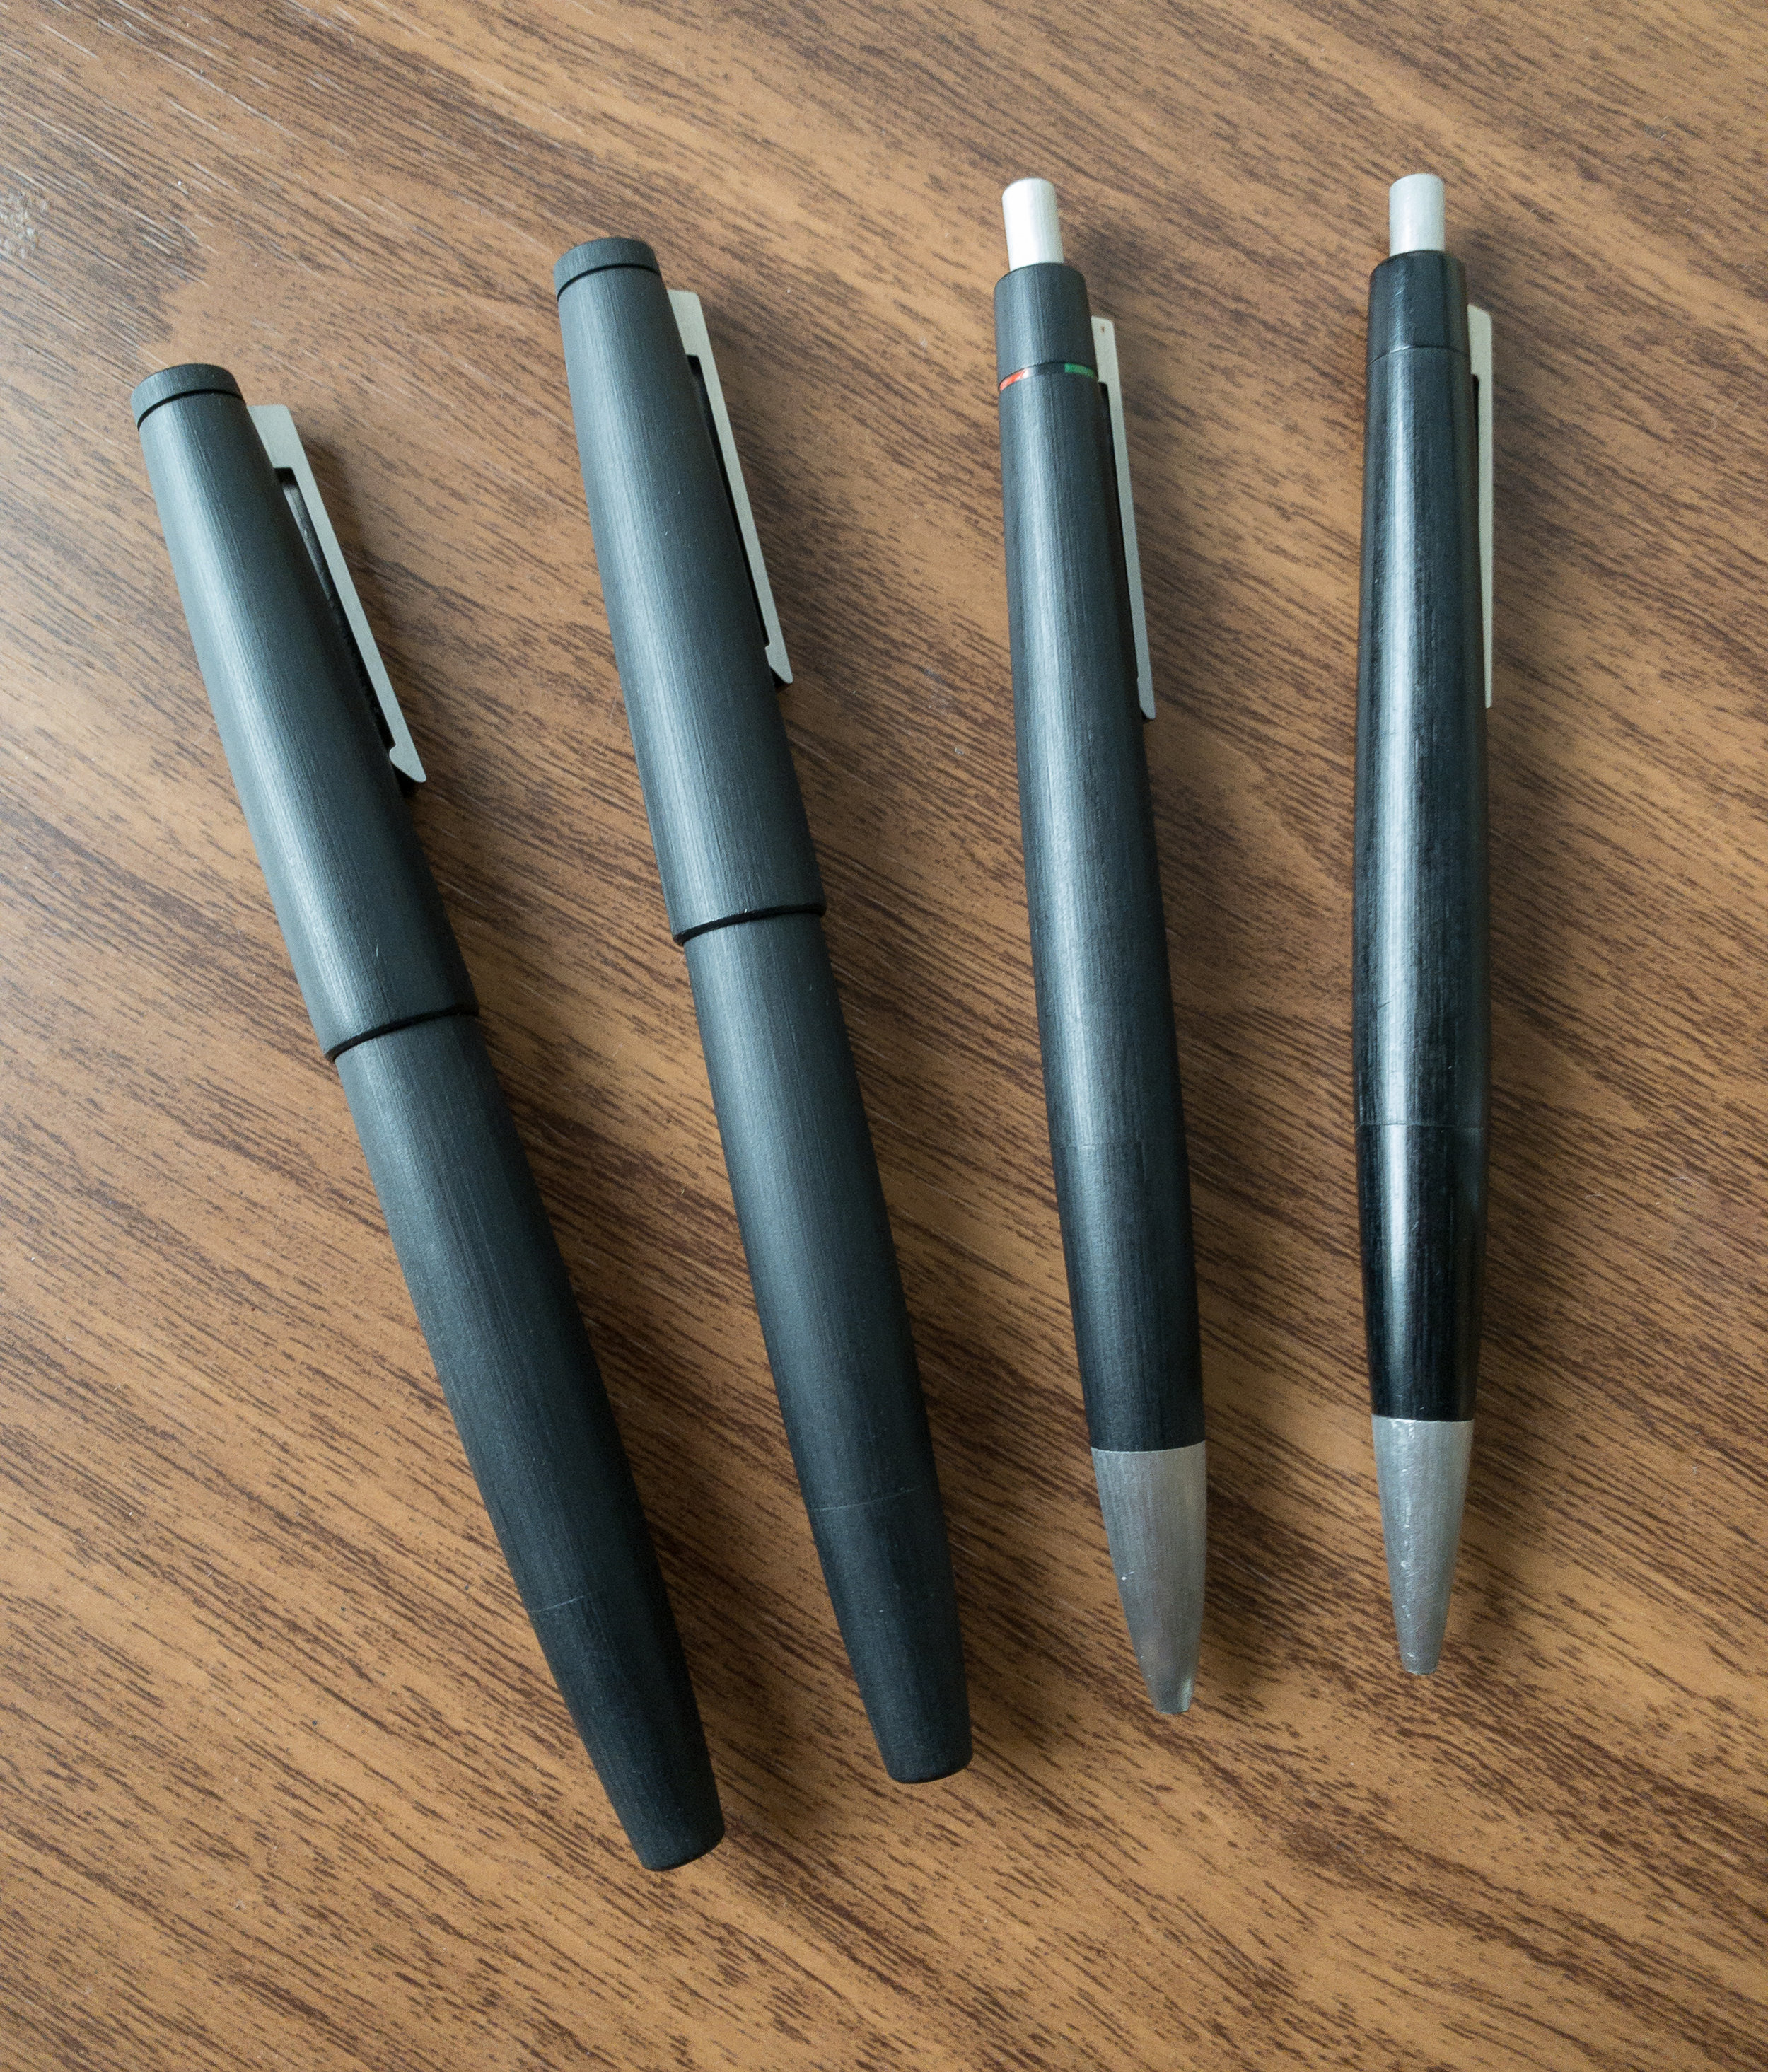 """As you might imagine, the Lamy 2000 is prominently featured in my """"Stationery Hall of Fame"""" post! (Link Below)."""